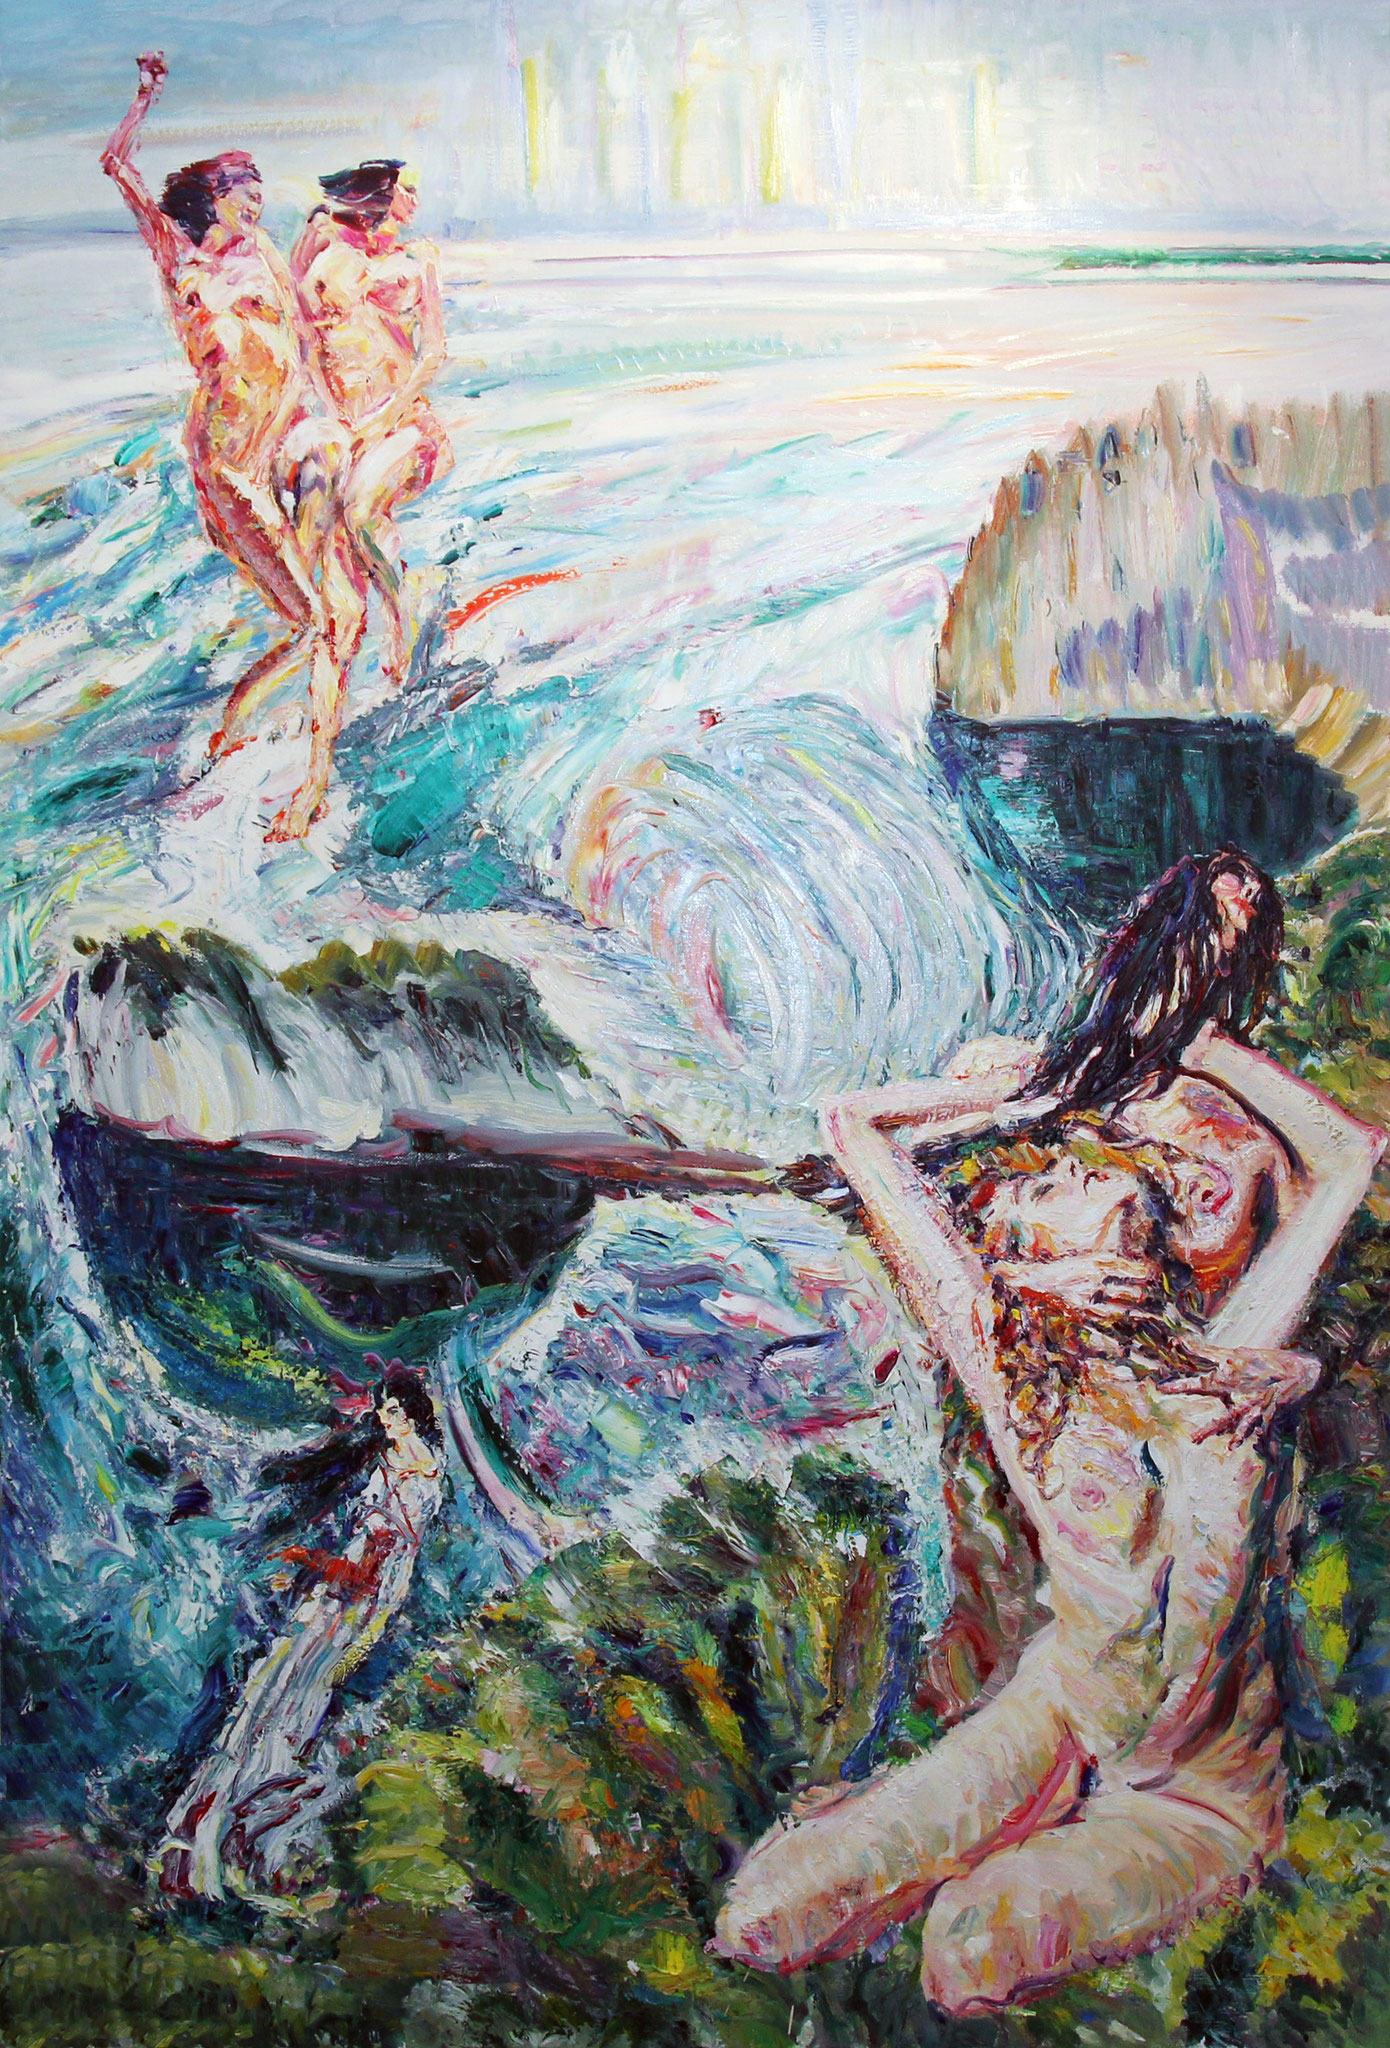 Silver of the Adriatic. 2012. Oil on canvas. 220 х 150